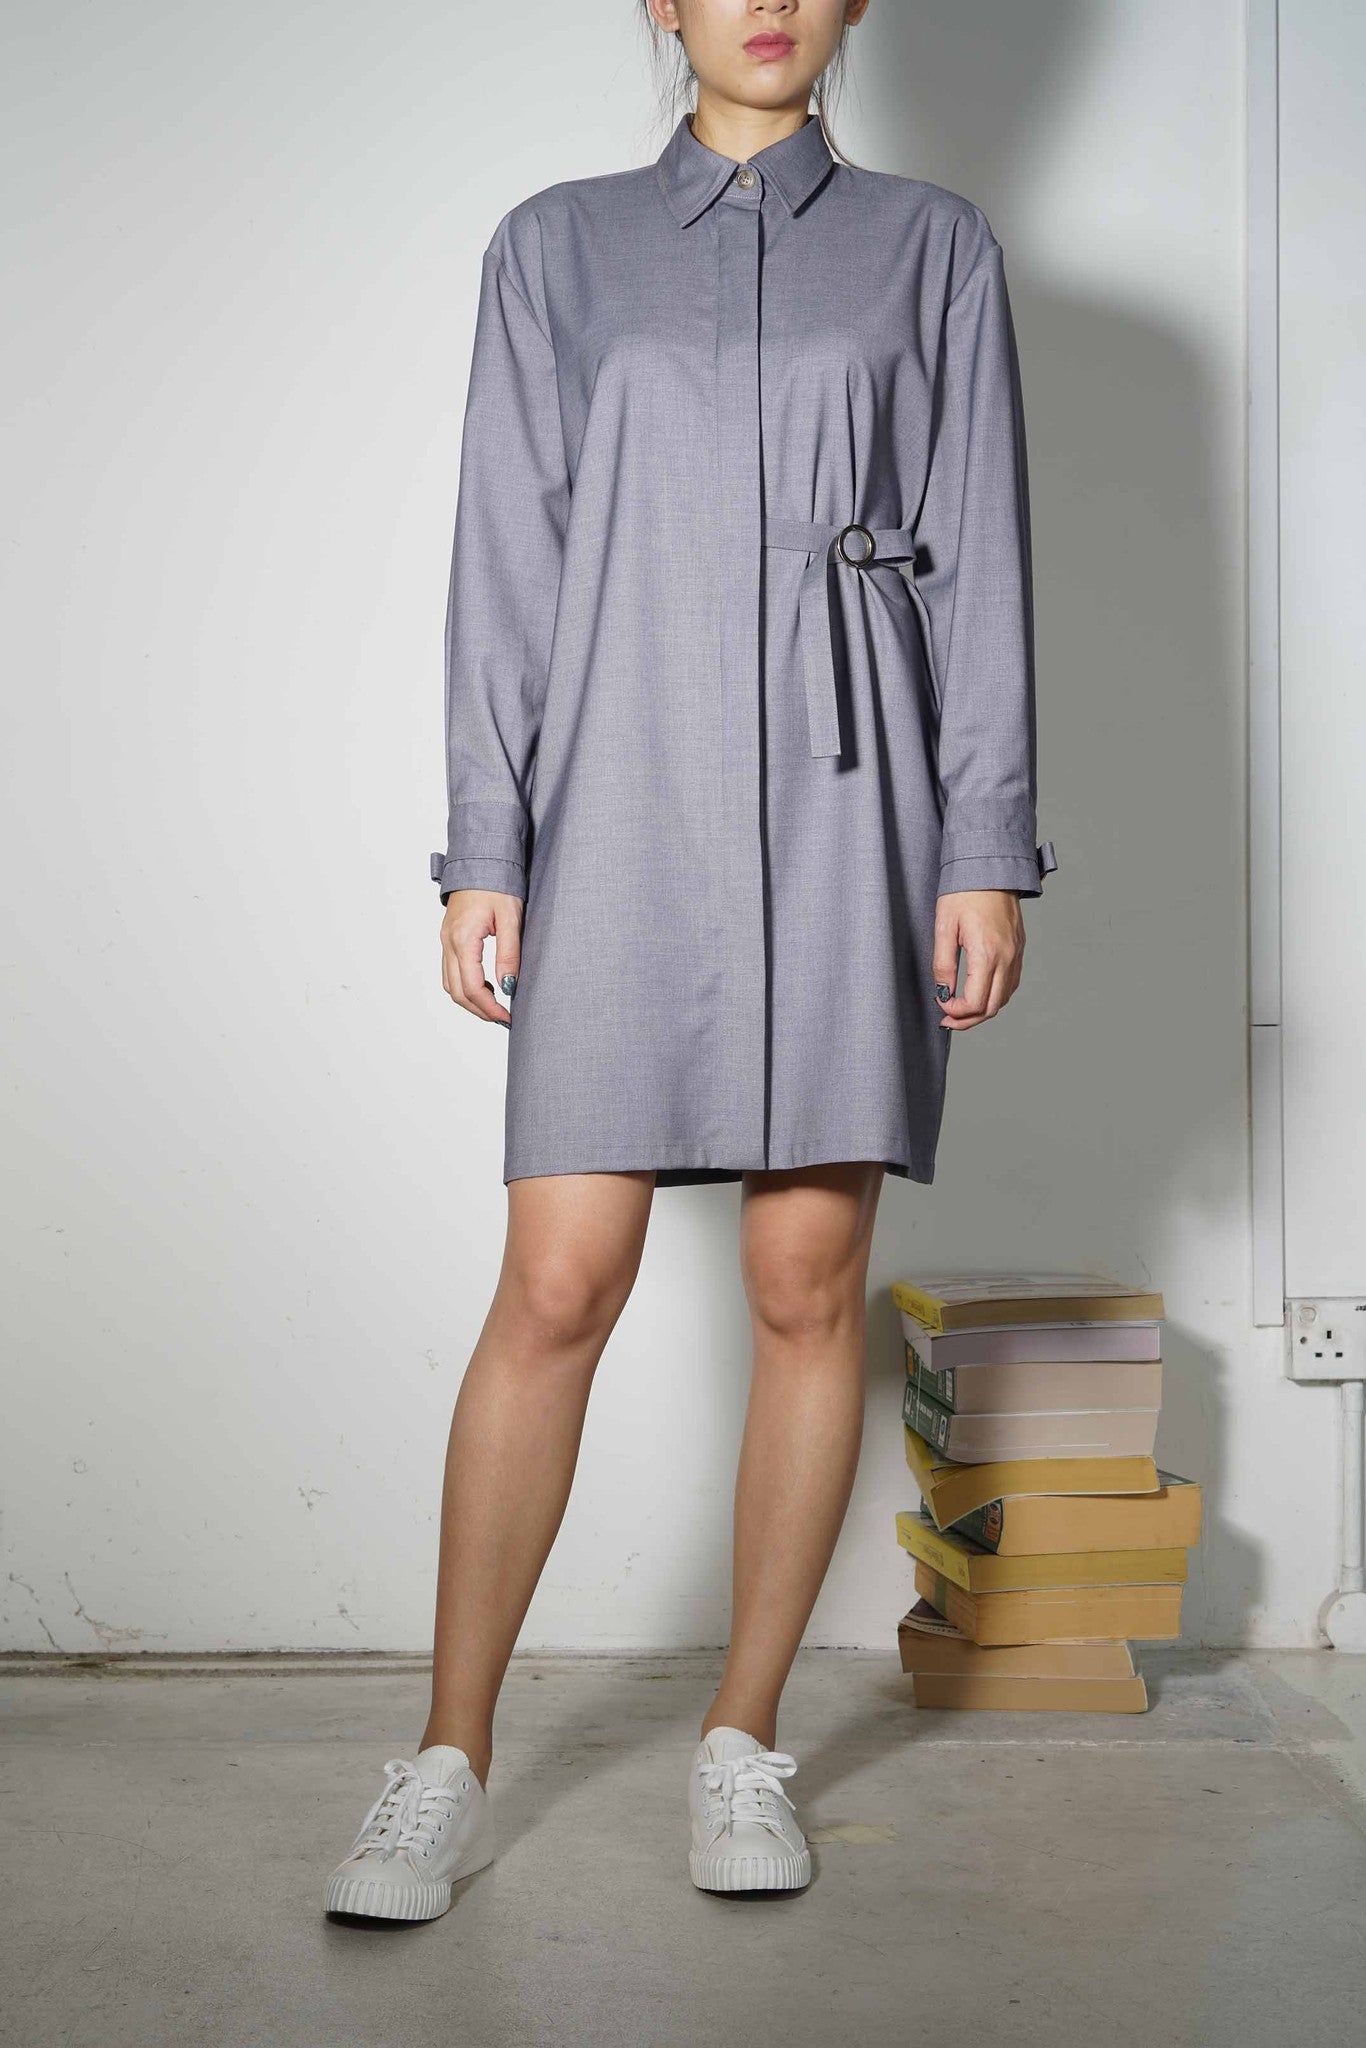 Plus-Minus Shirtdress #74 - Poplin